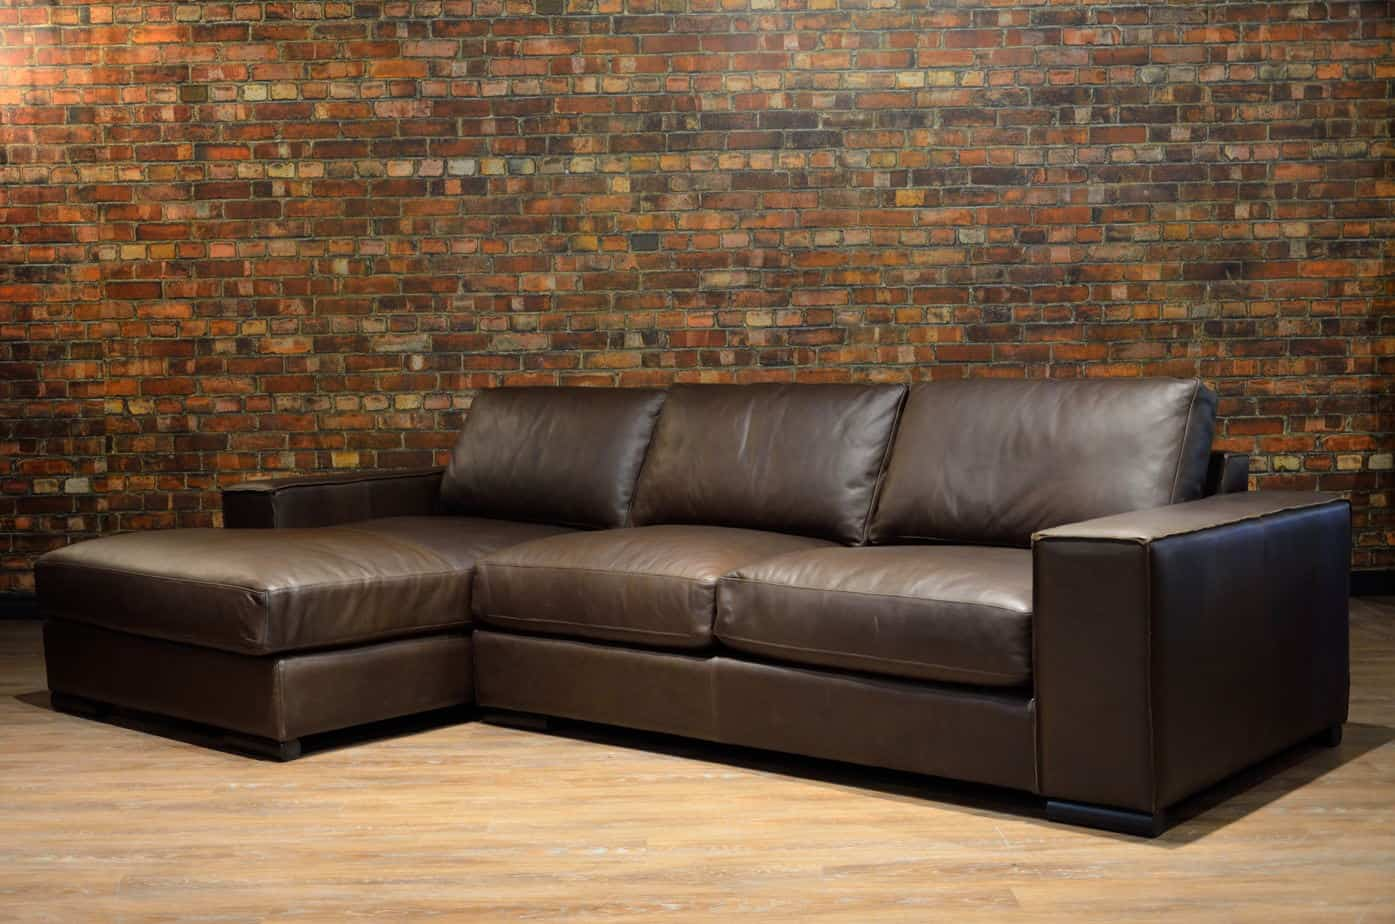 The Iroquois Leather Sectional Lhc Canada S Boss Leather